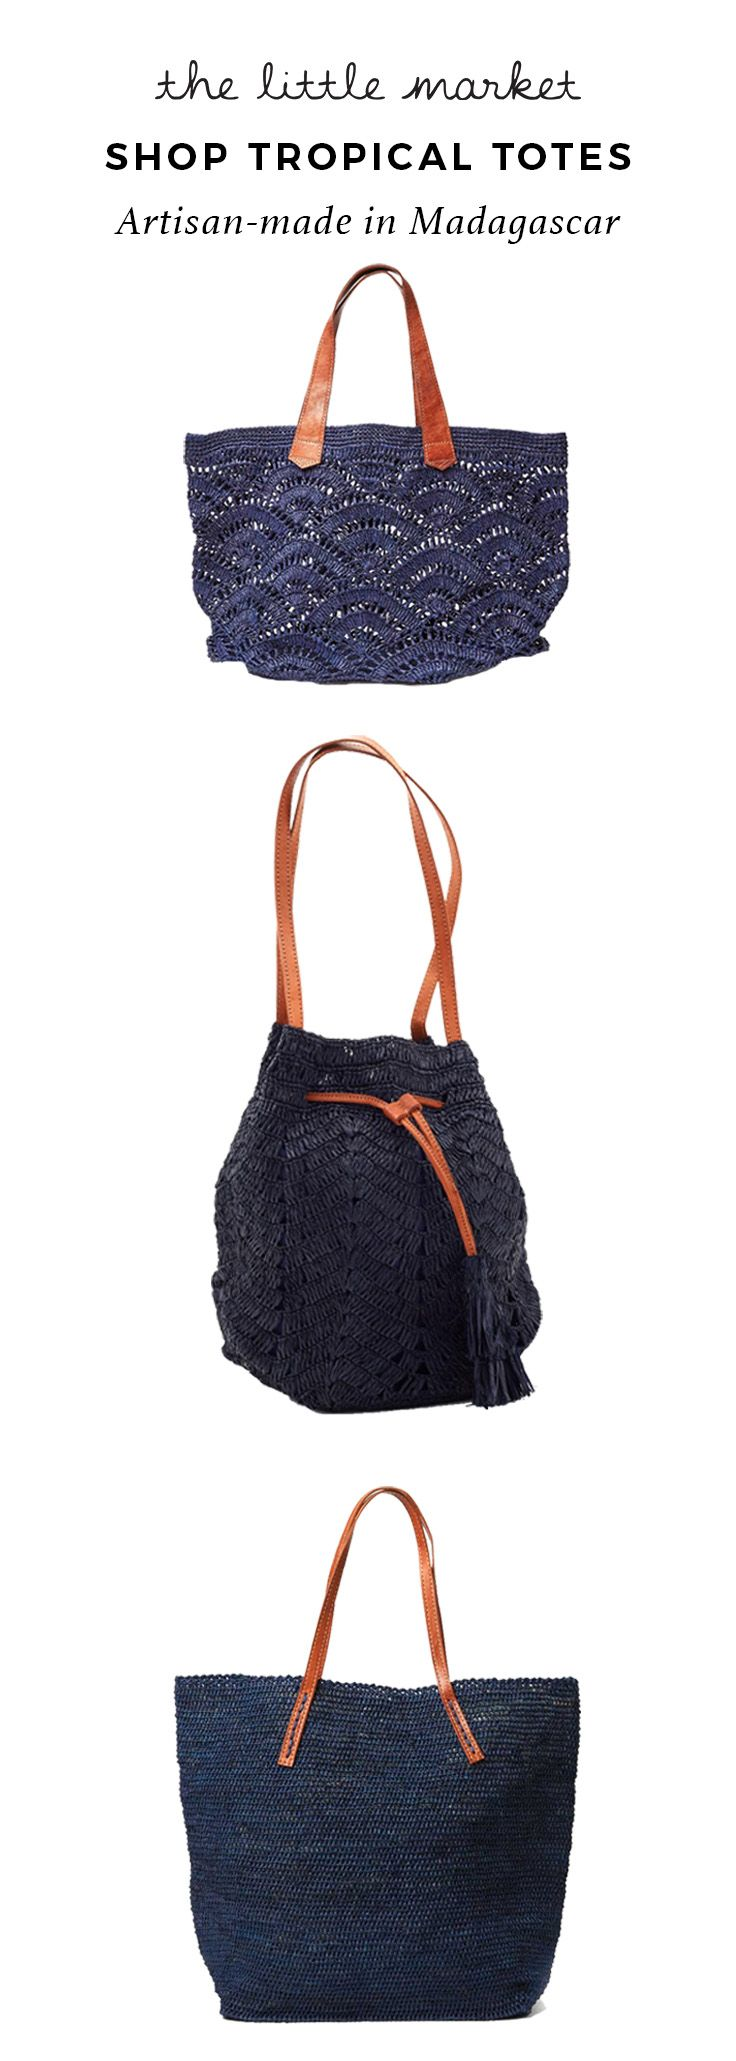 Bring your everyday essentials along with you in these spacious totes. These caryalls make for the ideal bag for getaways and local stays.